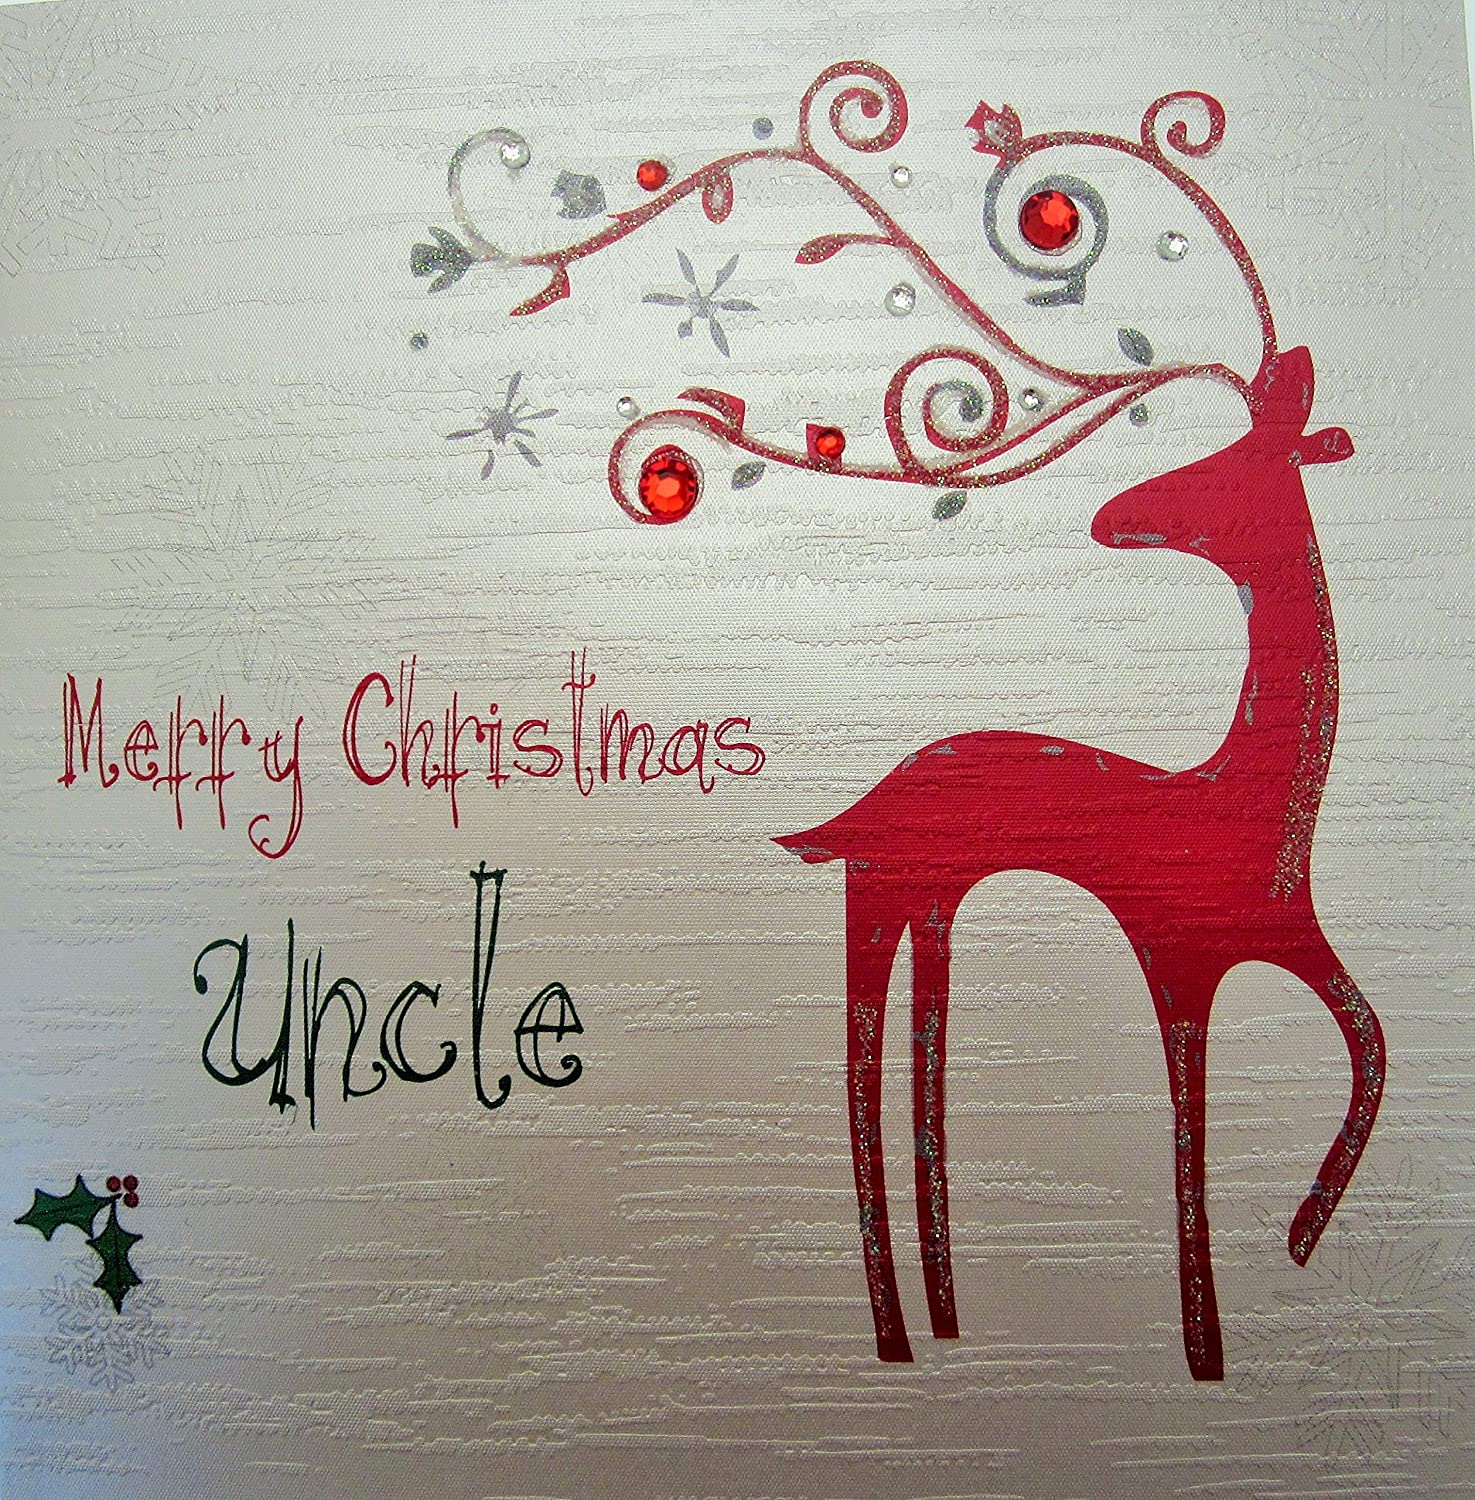 WHITE COTTON CARDS Merry Christmas Uncle Handmade Card in Reindeer Design fp31